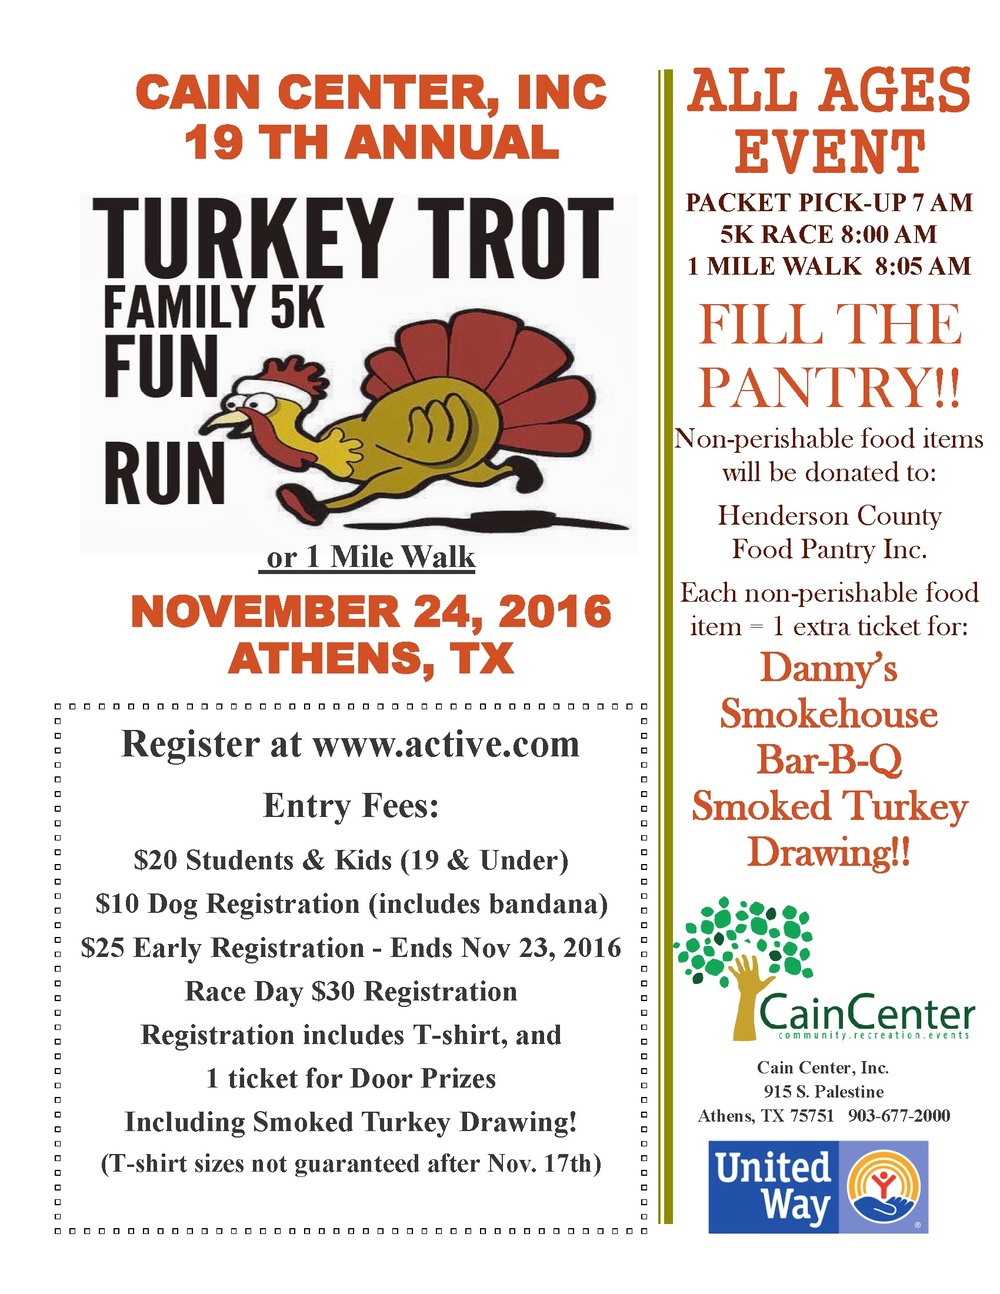 Cain Center Turkey Trot